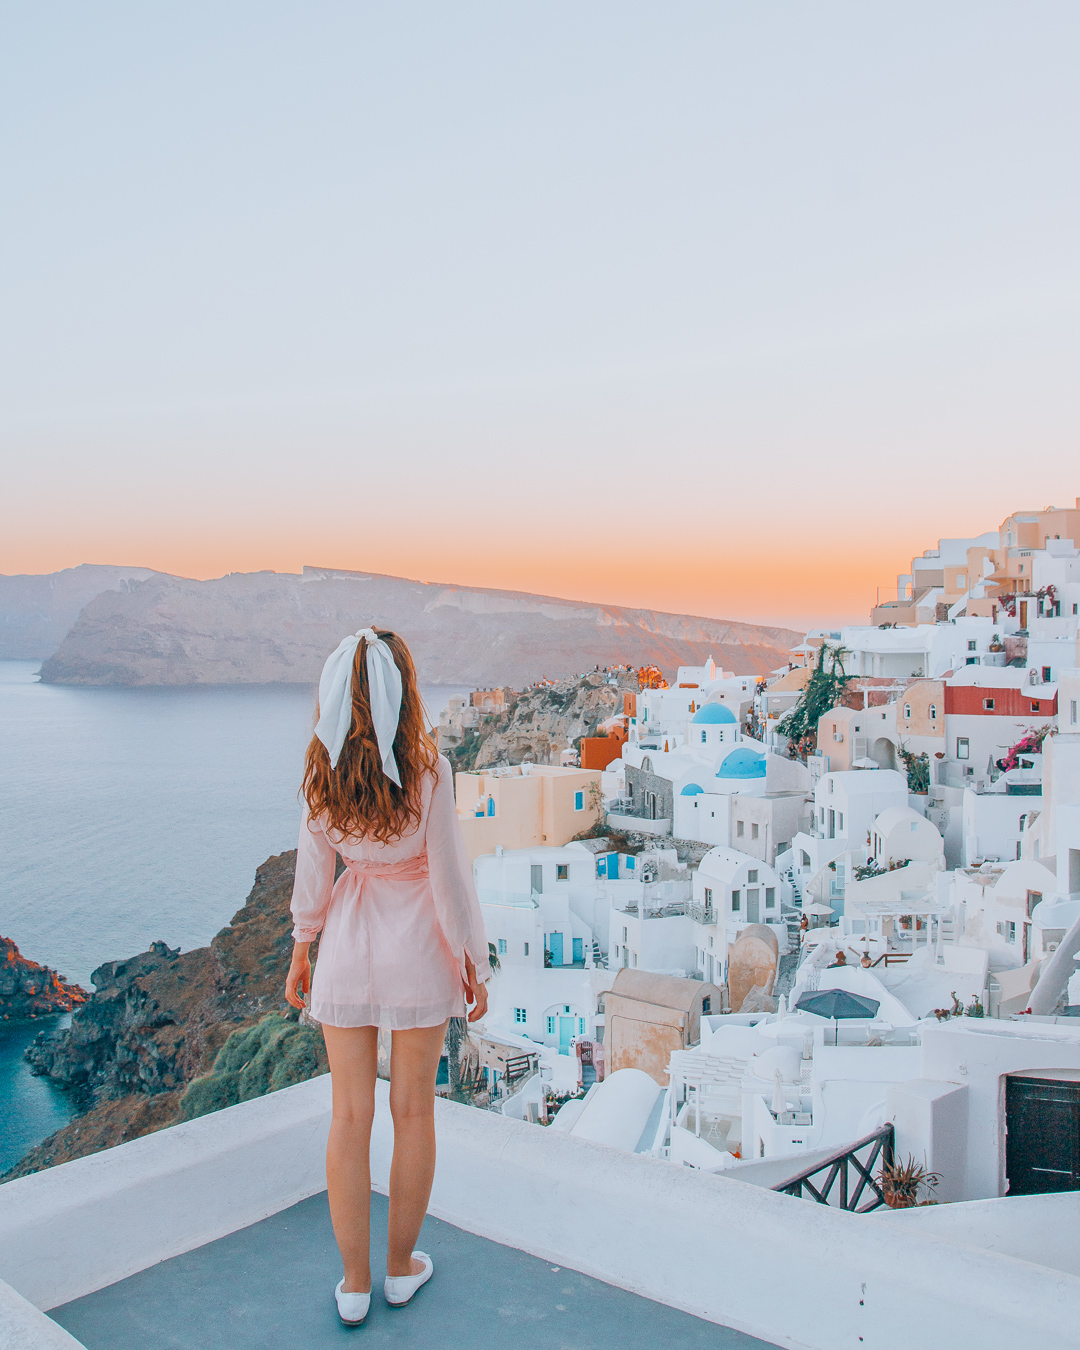 Girl looking at the view of Oia from a rooftop during sunset